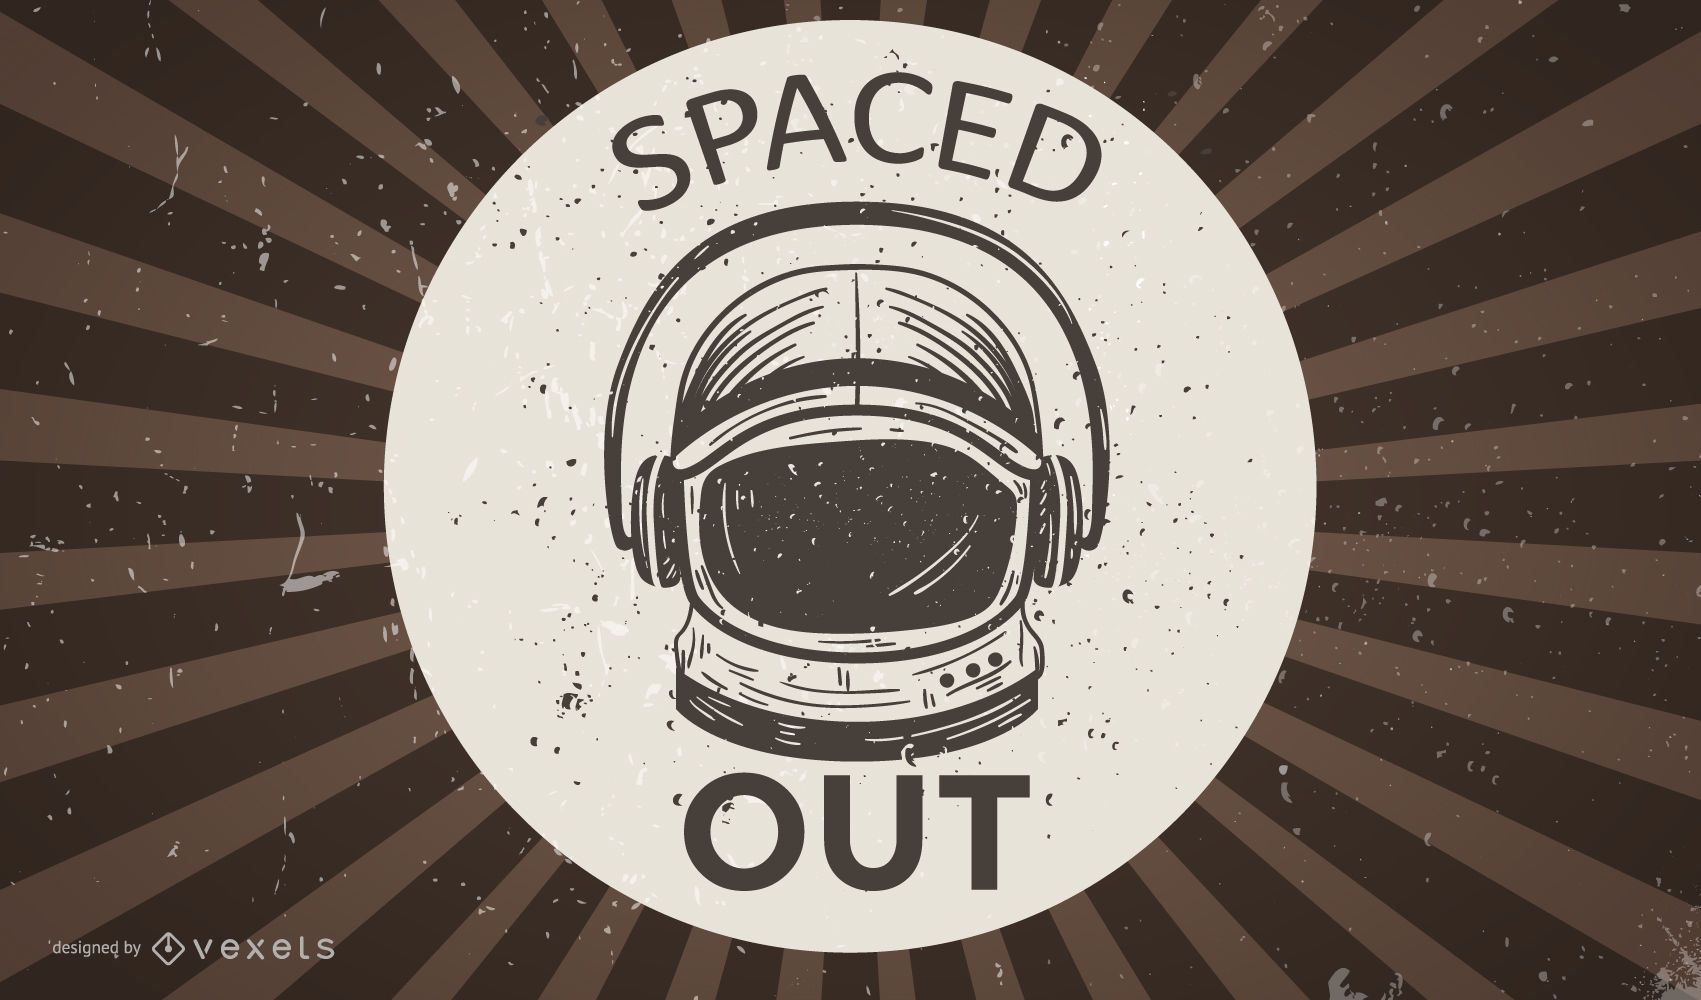 Spaced Out Illustration